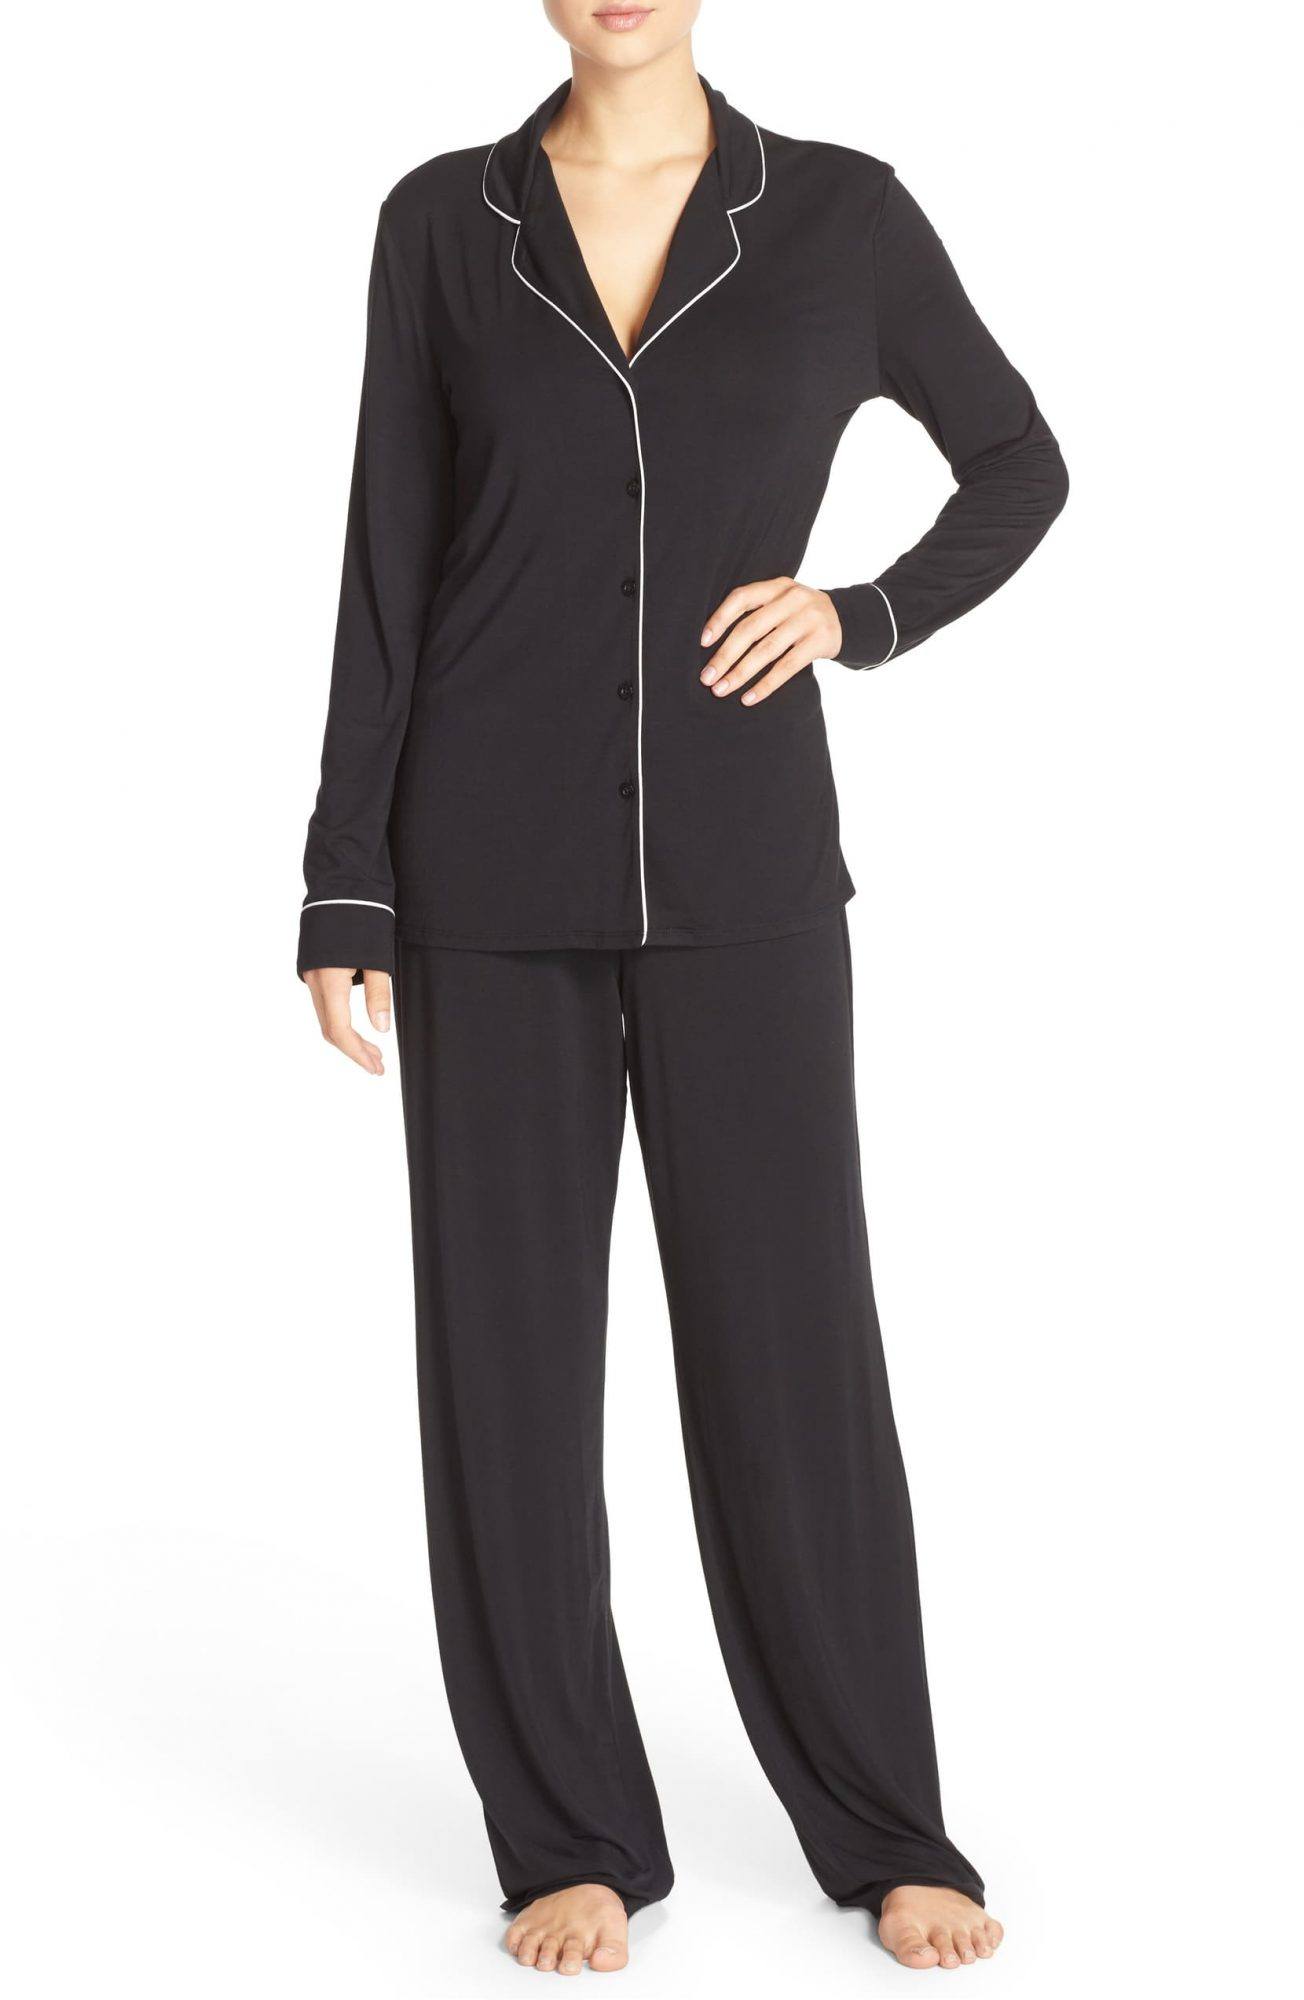 These top-rated pjs are in nordstroms holiday gifts bestsellers